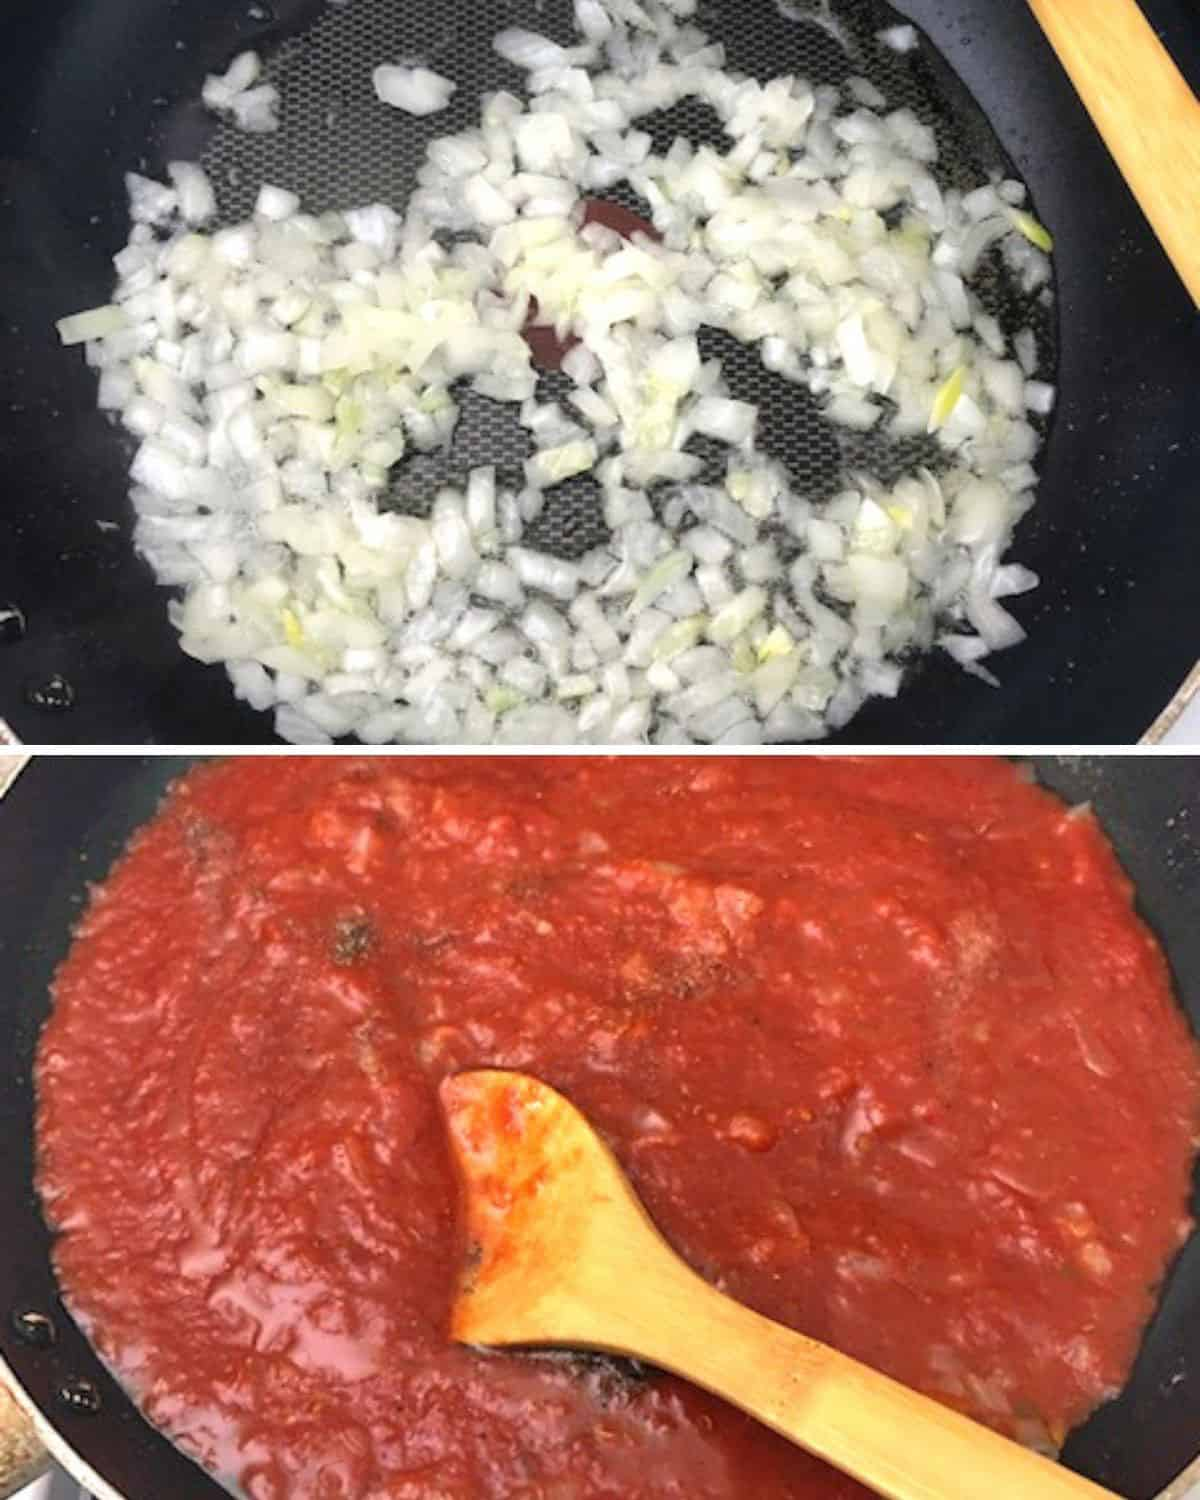 onions cooking in pan, tomato sauce in pan with wooden spoon